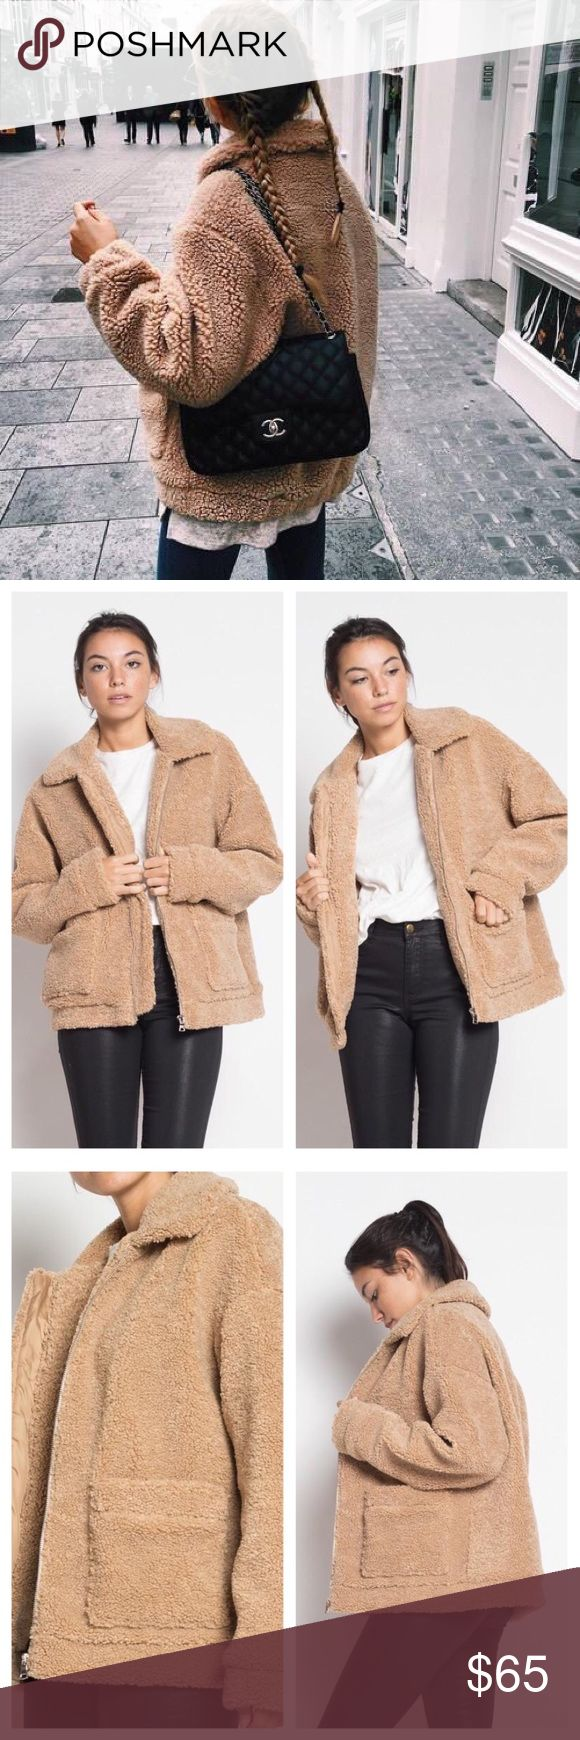 Oversized fluffy teddy bear tan jacket pockets - Brand new from our online store - No trades  - FIRM on price Breath of Youth Jackets & Coats Puffers